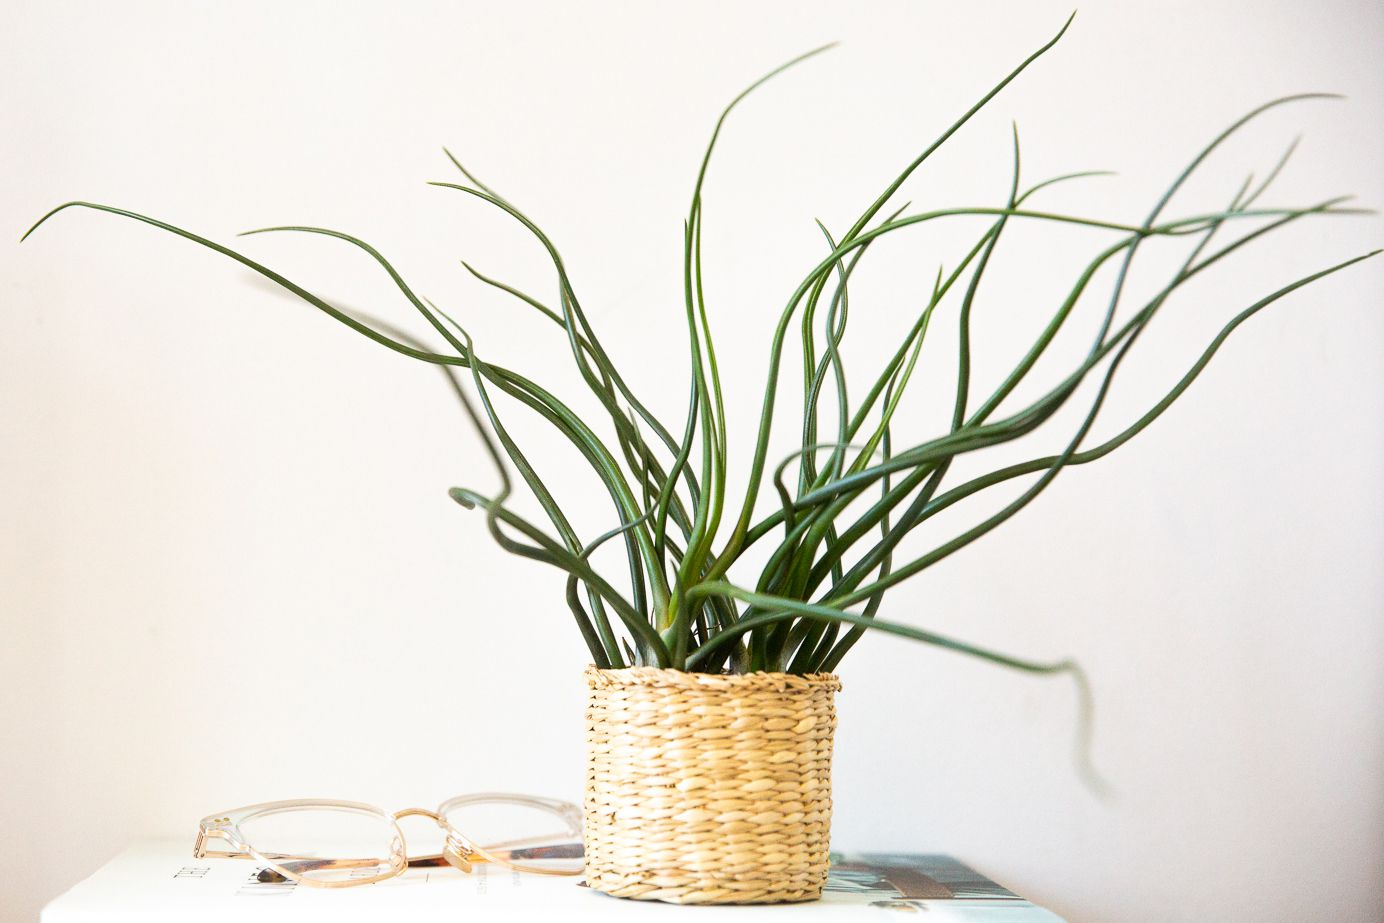 Bulbous air plants displayed in small woven container